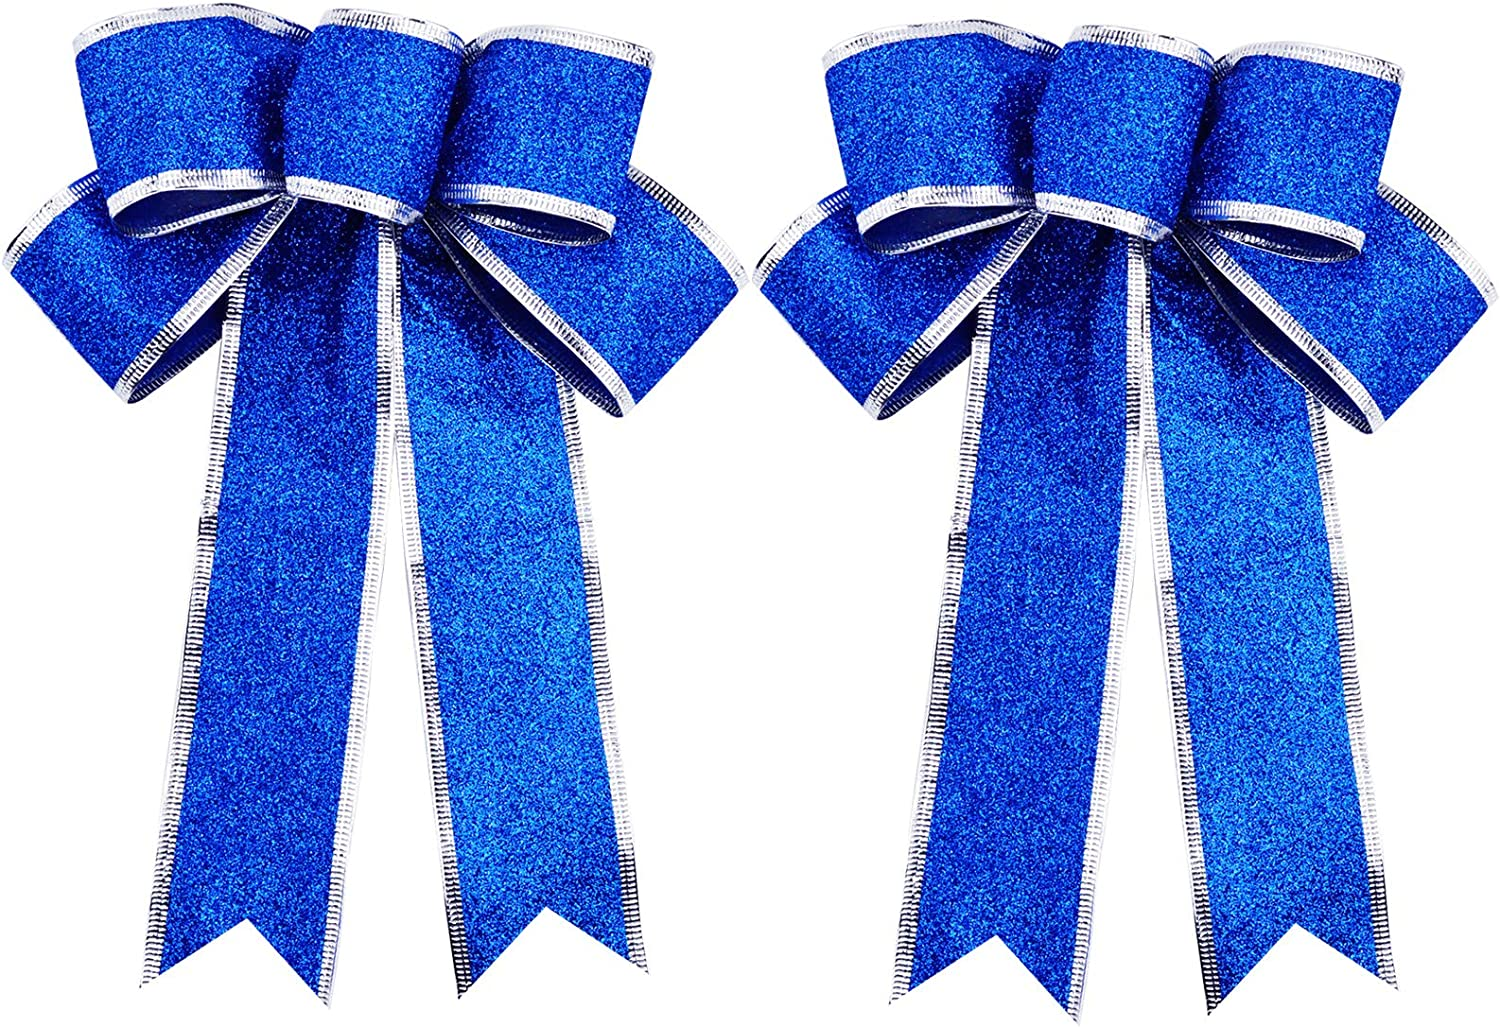 FIVEI Christmas Ribbon Bows Large Blue Christmas Tree Topper Xmas Bowknot Decoration Ornaments for Wreaths Gift Wrapping Supplies 7 x 9.8inch 2 Pack